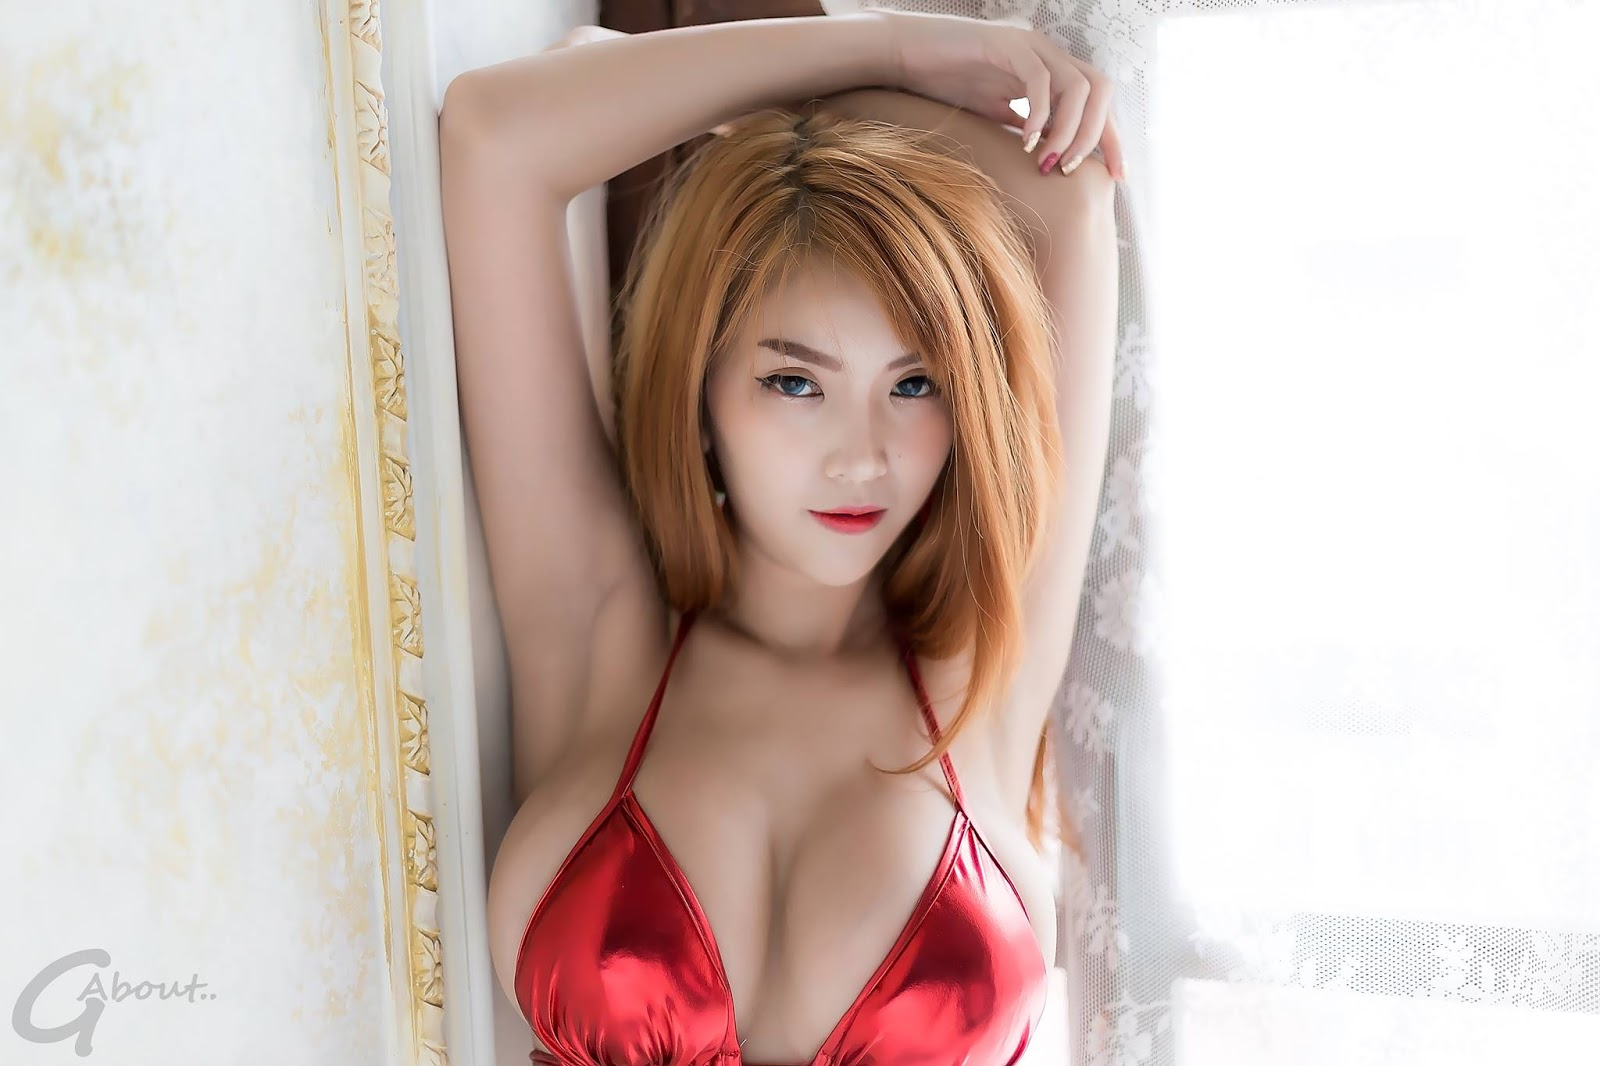 🎦 Thai Model No.002 - Alisa Rattanachawangkul ⛔ Full Allbum Hot 🌹🌹